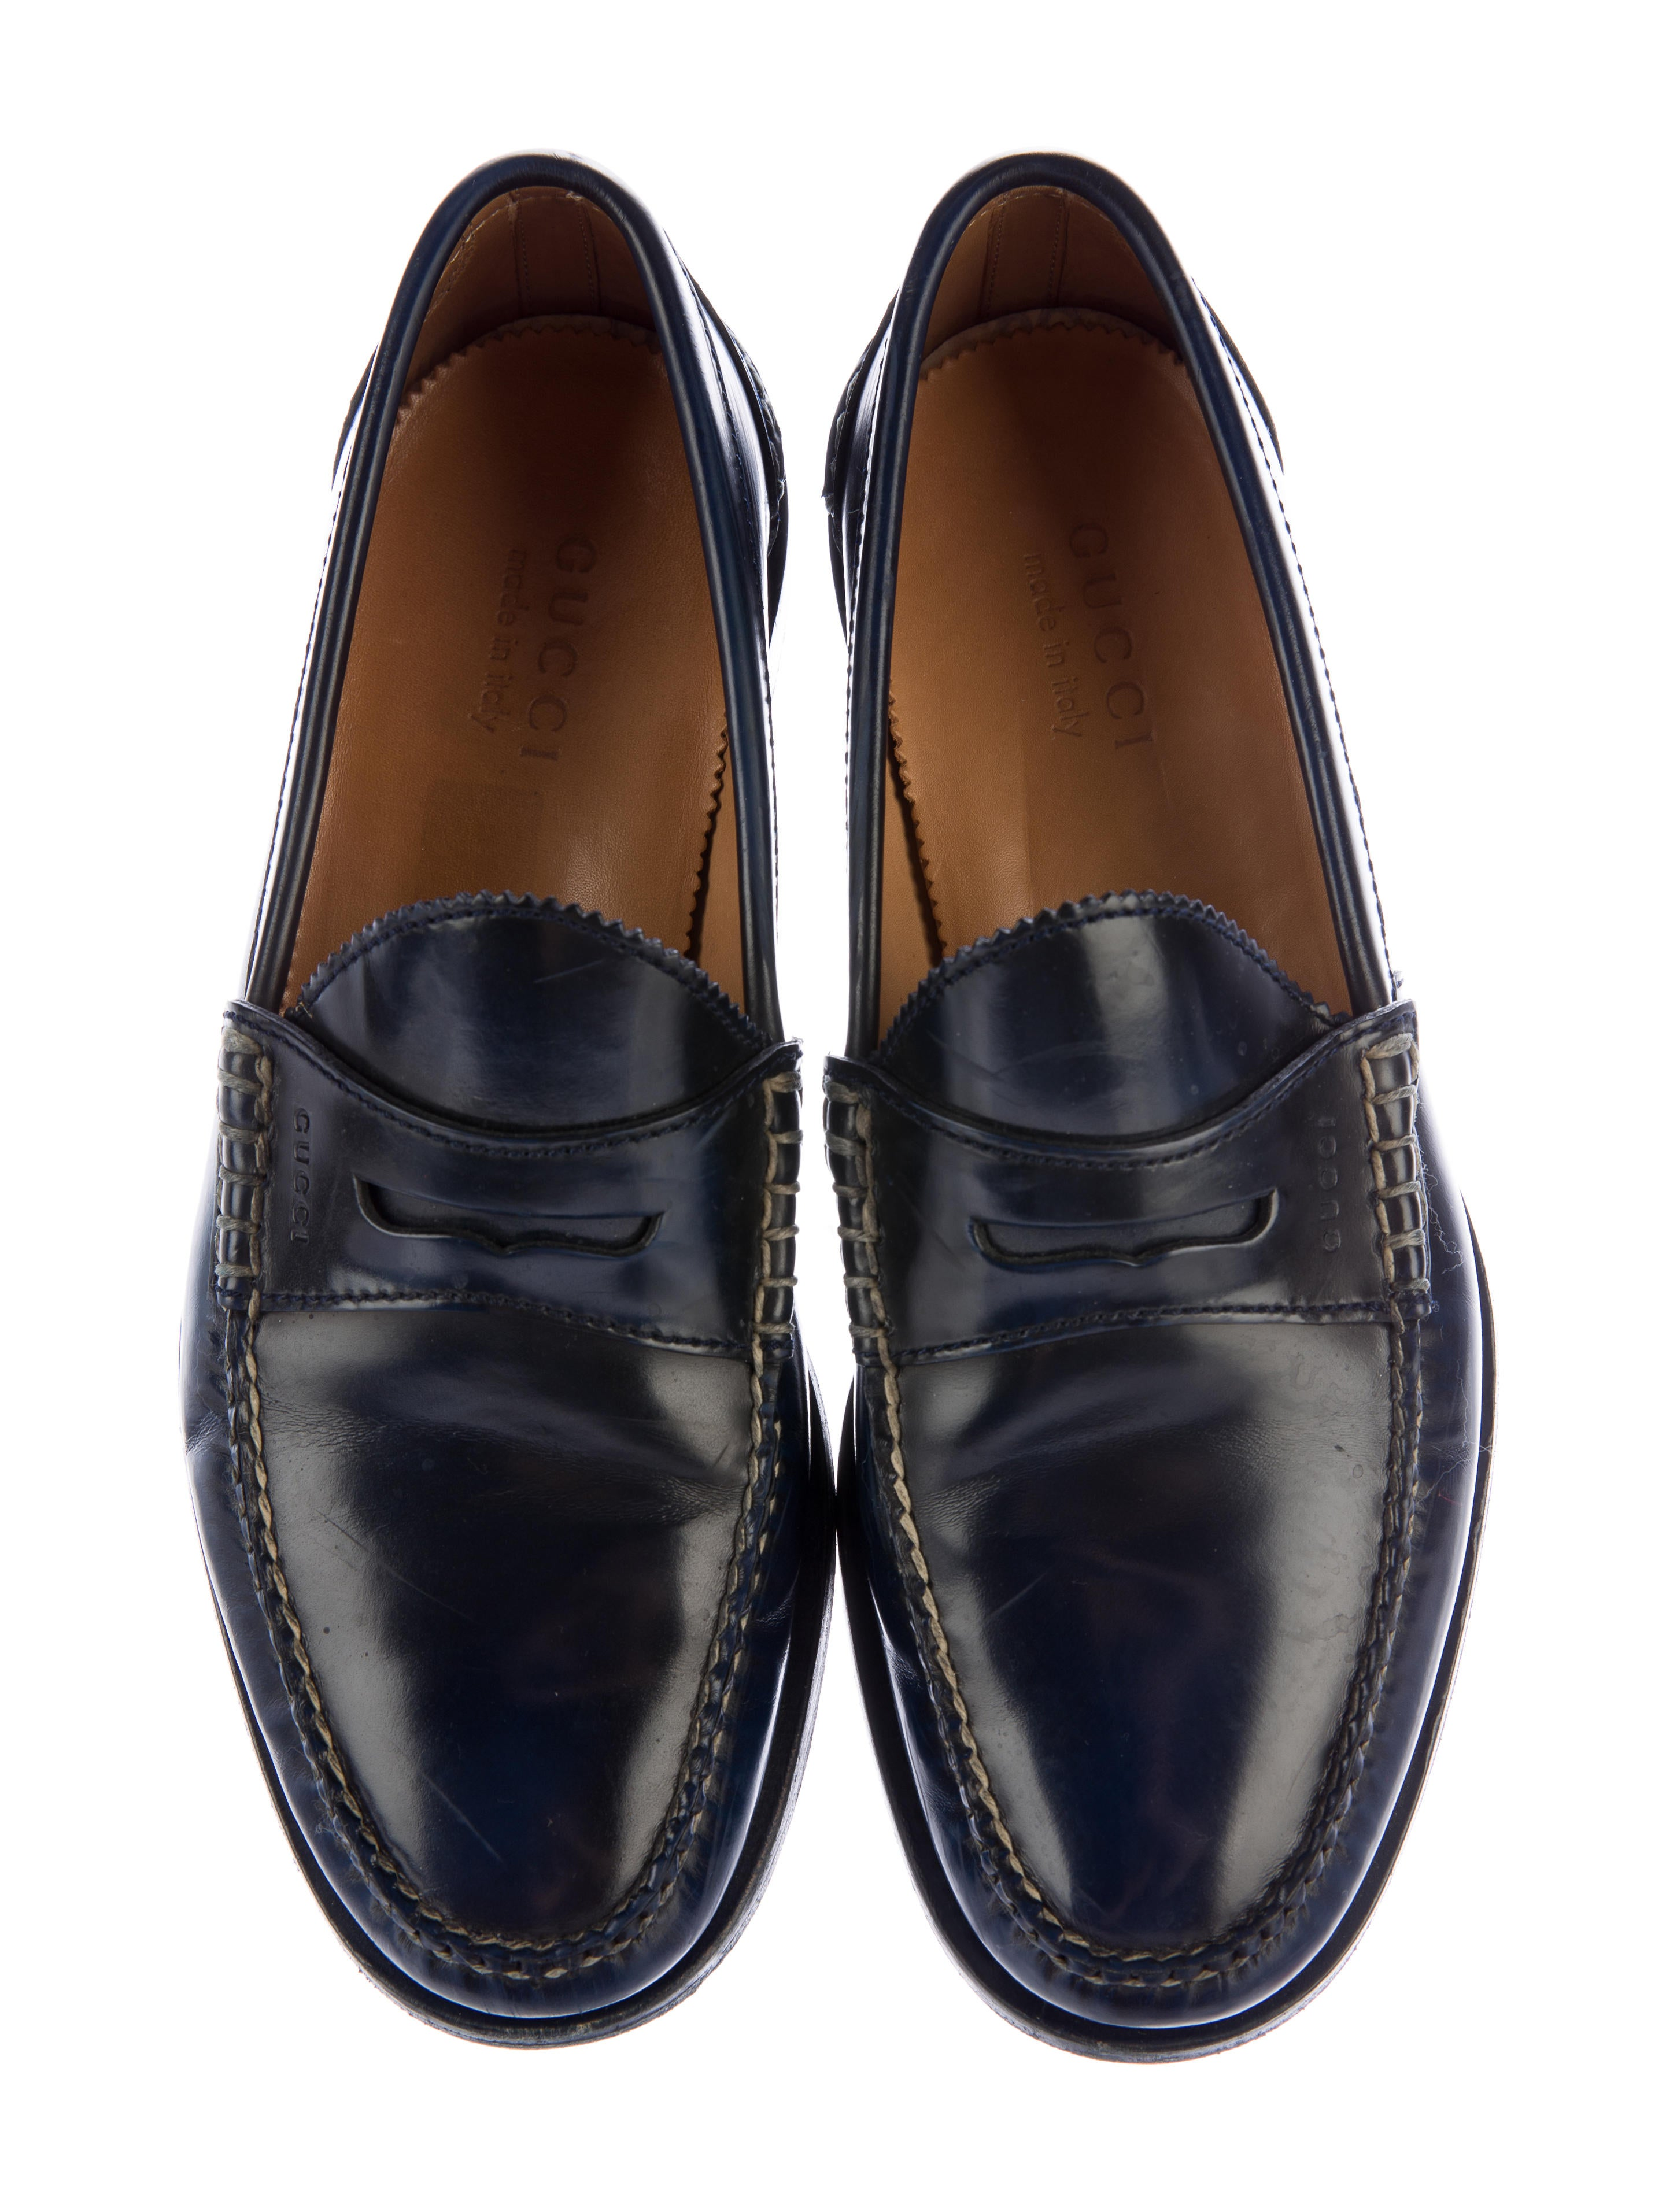 Gucci Leather Penny Loafers - Shoes - GUC153875 | The RealReal